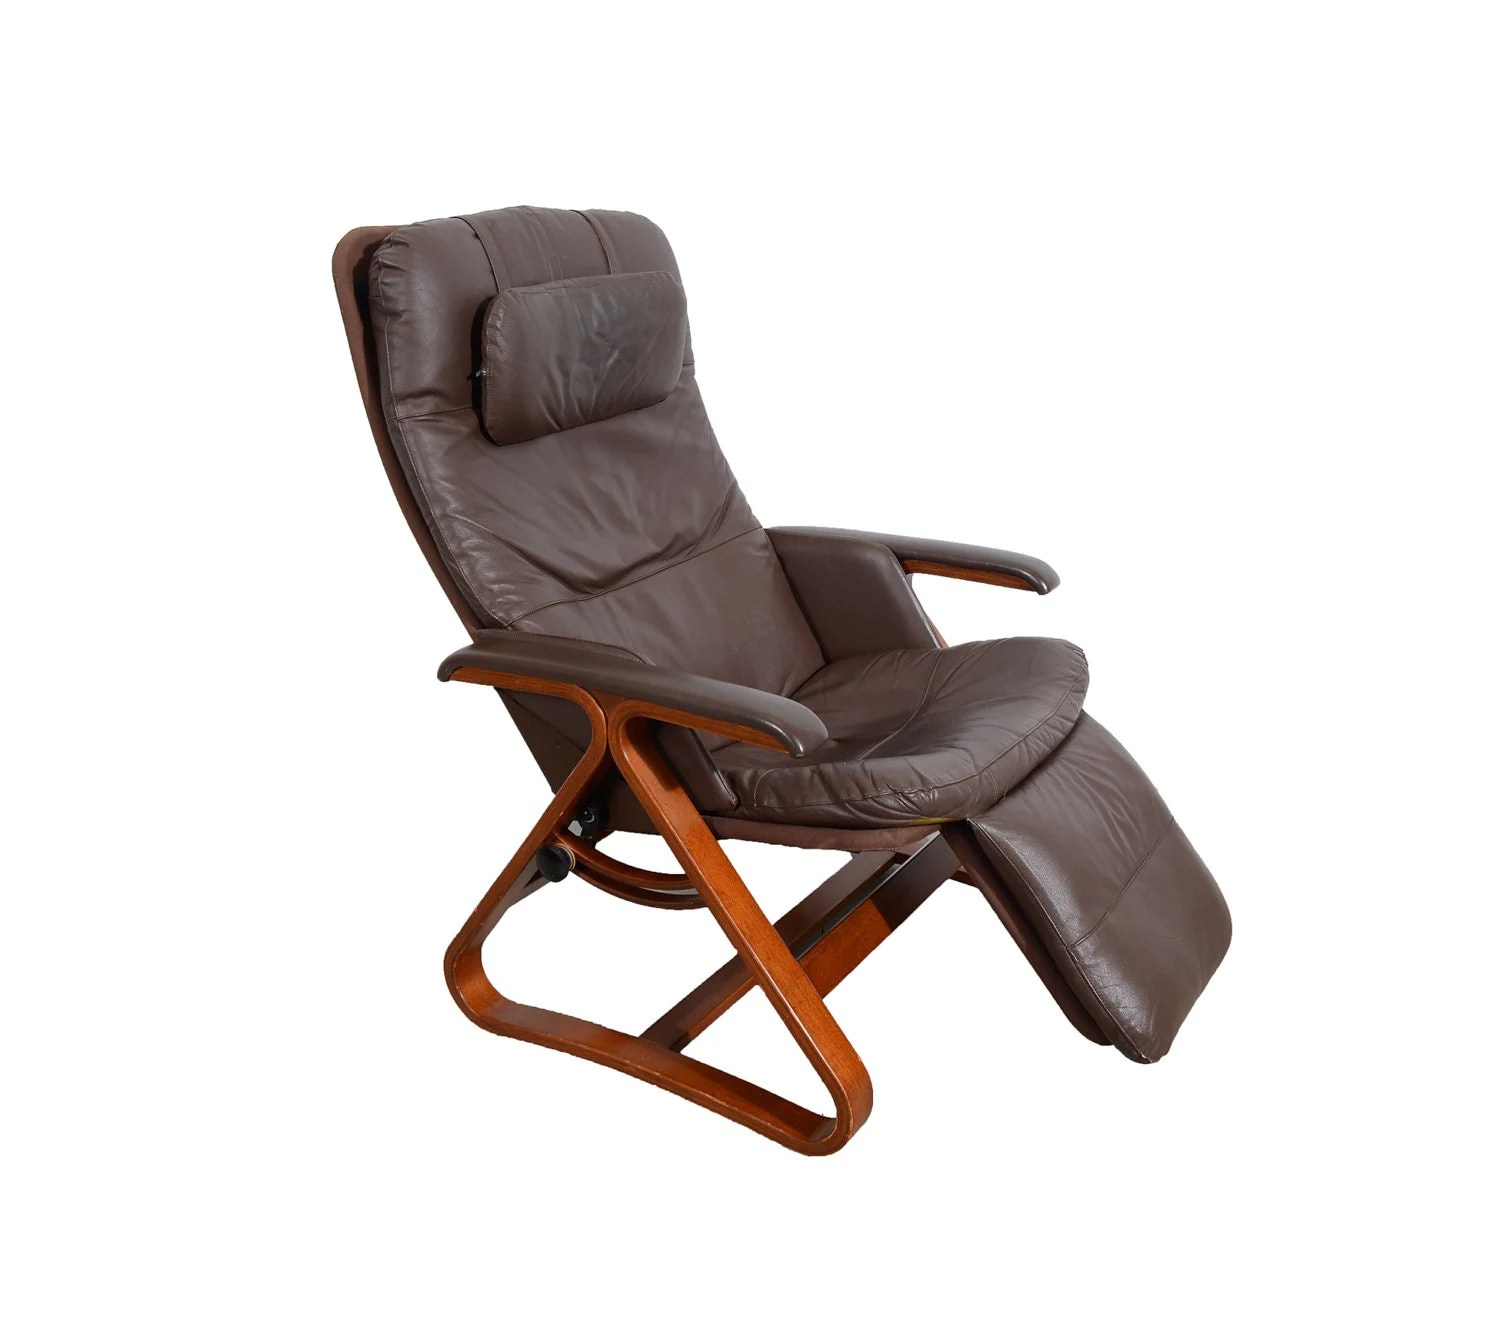 Modern Recliner Chairs Leather Lounge Chair Backsaver Zero Gravity Chair Danish